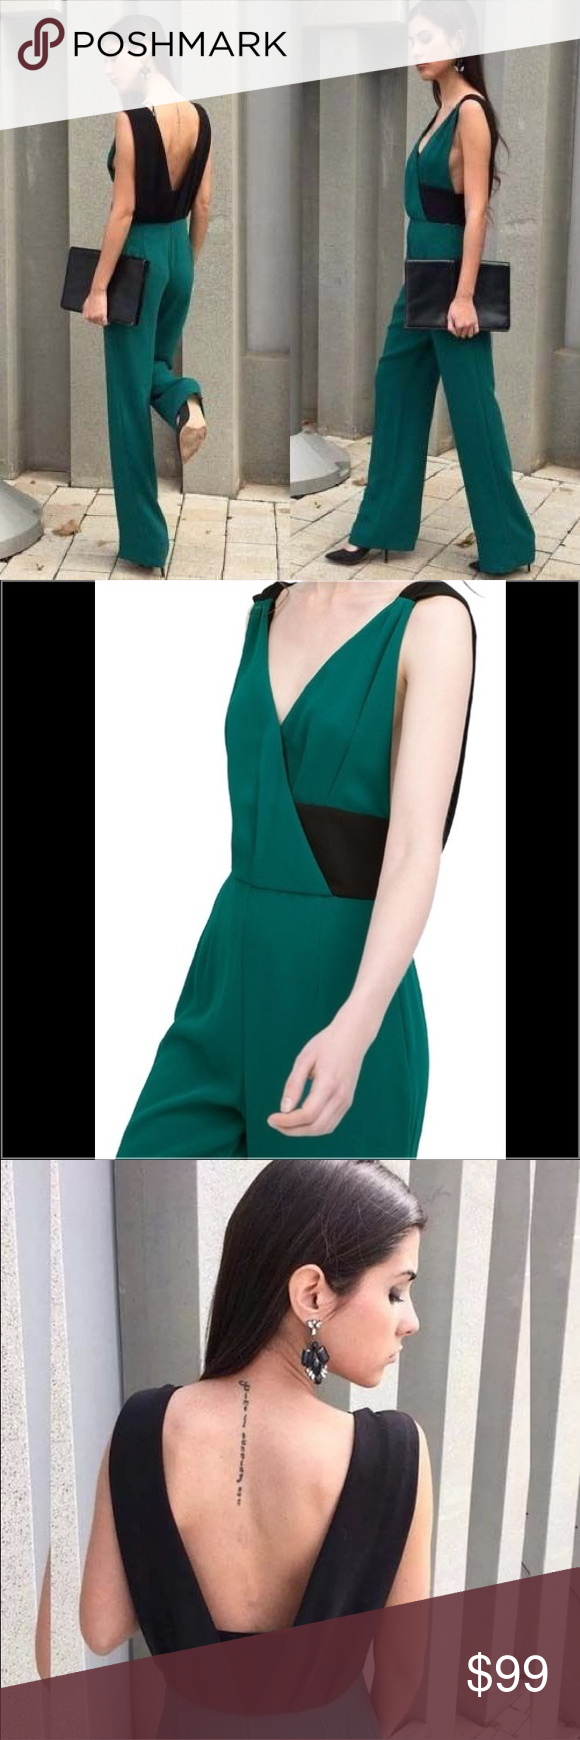 b6d395132a2 Zara Green Black Backles Long Romper Jumpsuit XS ZARA BNWT GREEN EMERALD  LONG COLORED JUMPSUIT Size